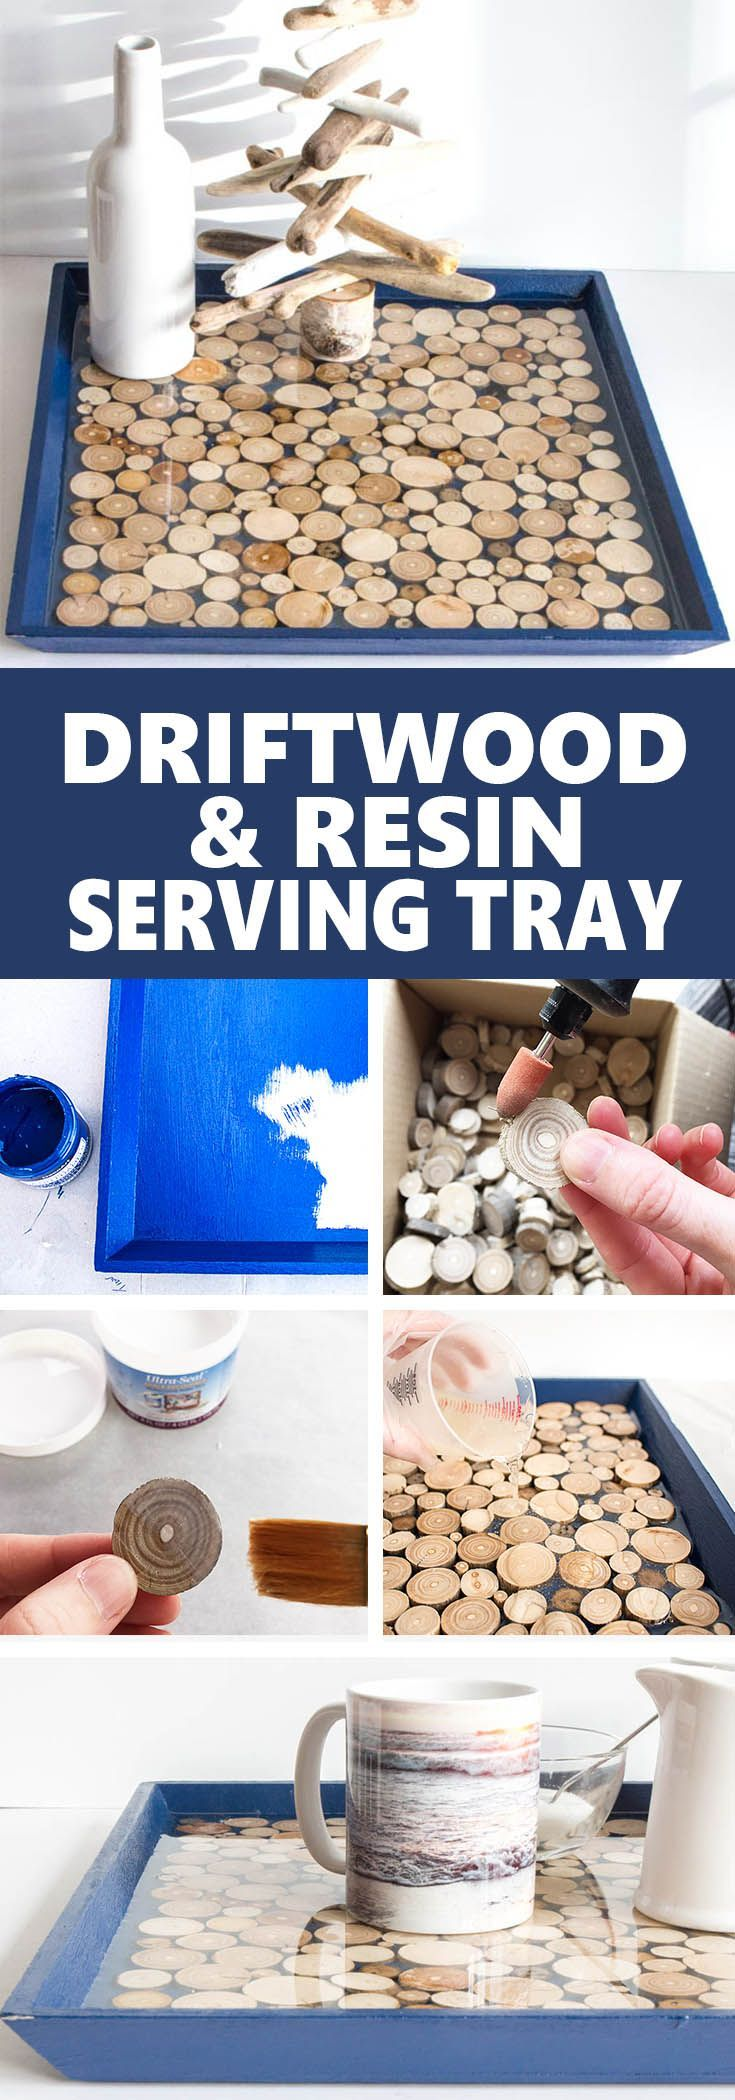 DIY serving tray with driftwood slices and EnviroTex Lite Pour-On Resin. Gorgeous handmade home decor or gift idea. #CoastalStyle #ResinCrafts #ResinDecor #ResinCraftsBlog via @resincraftsblog